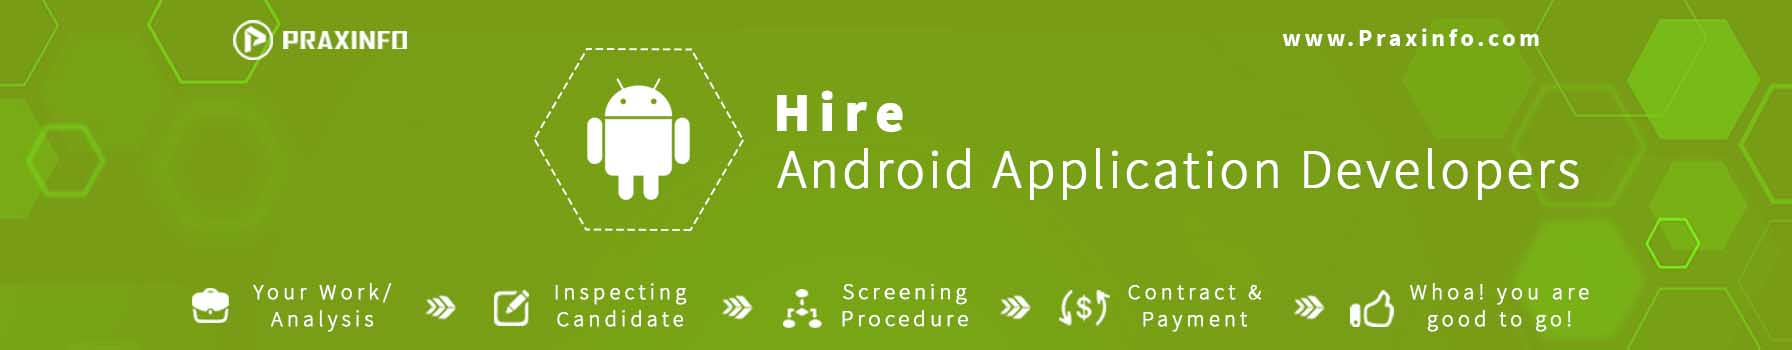 Hire-Android-Application-developer.jpg